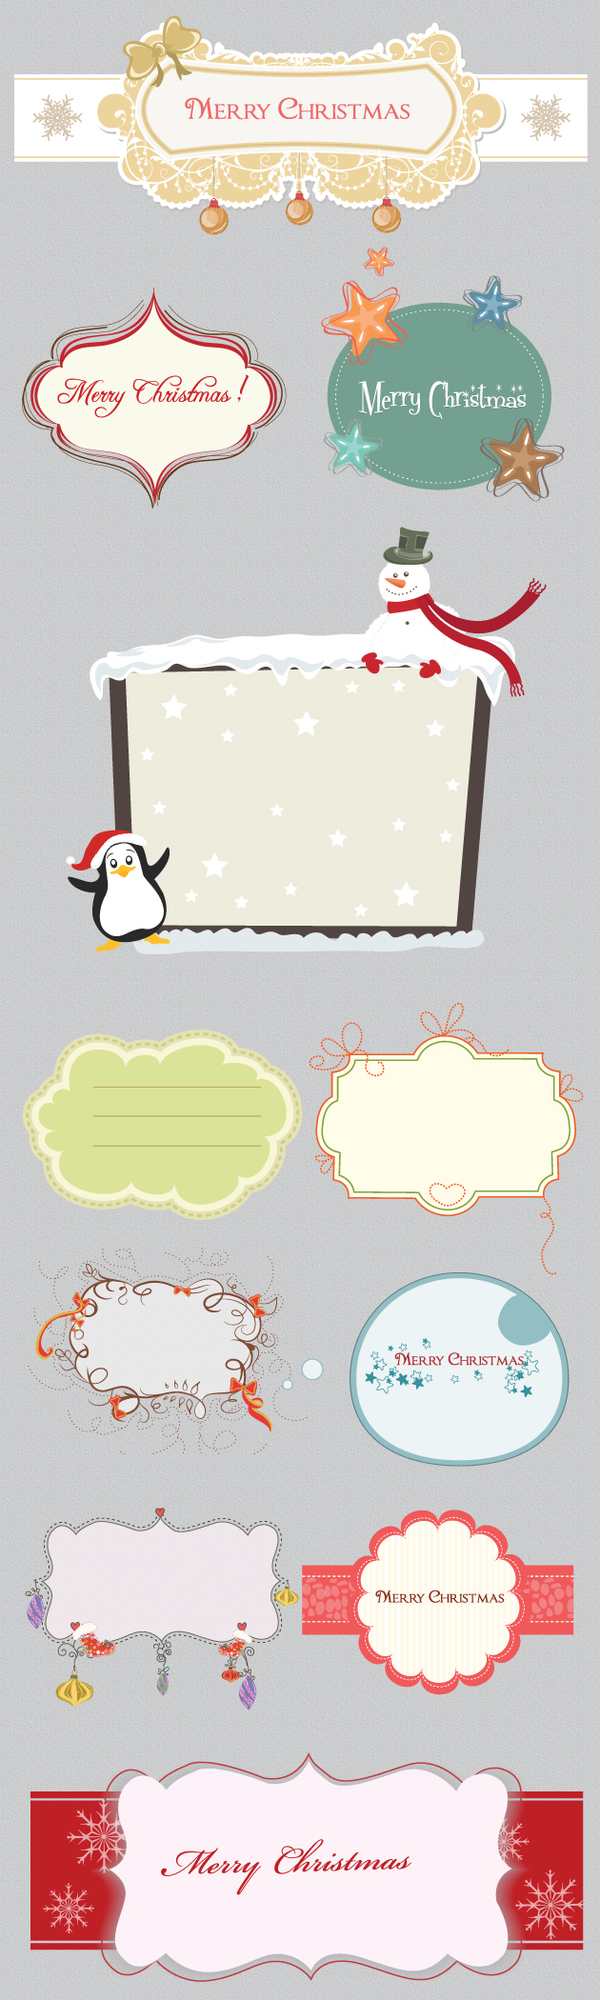 illustration frames christmas